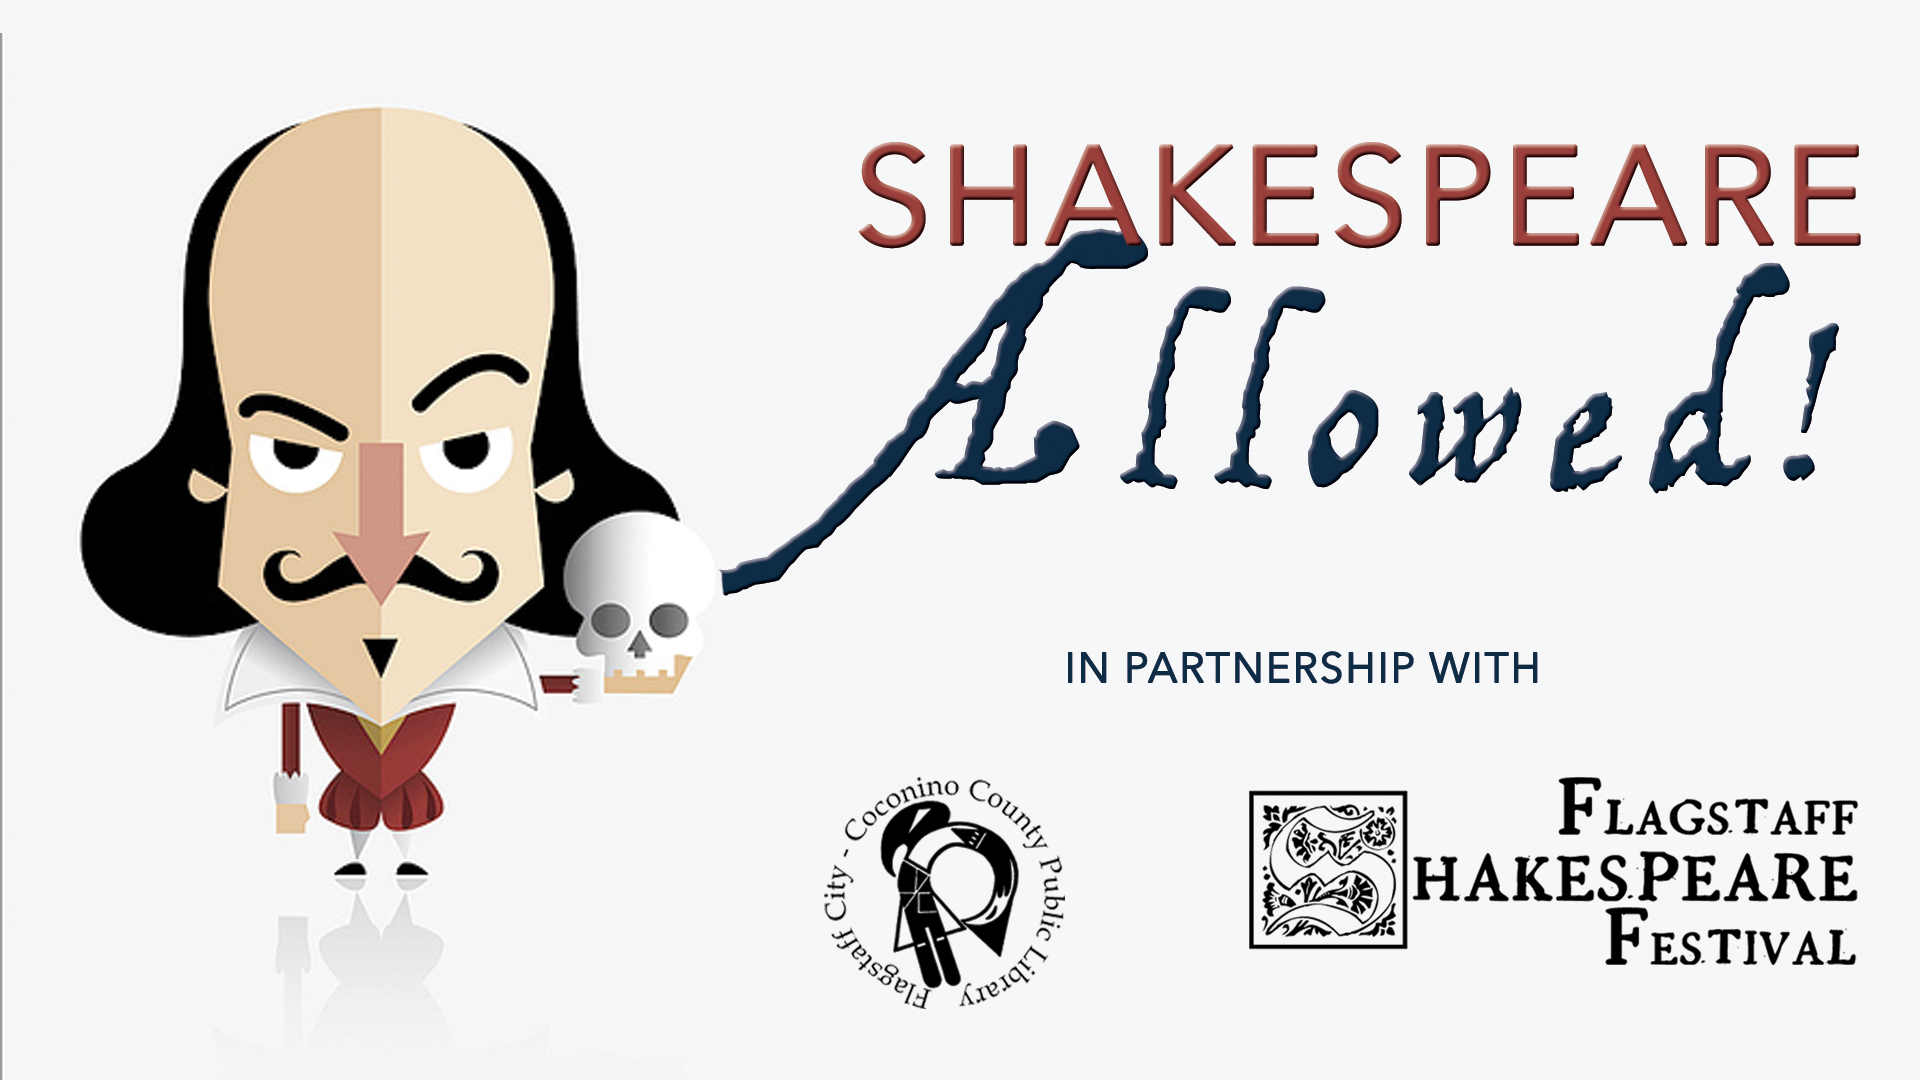 Shakespeare Allowed!